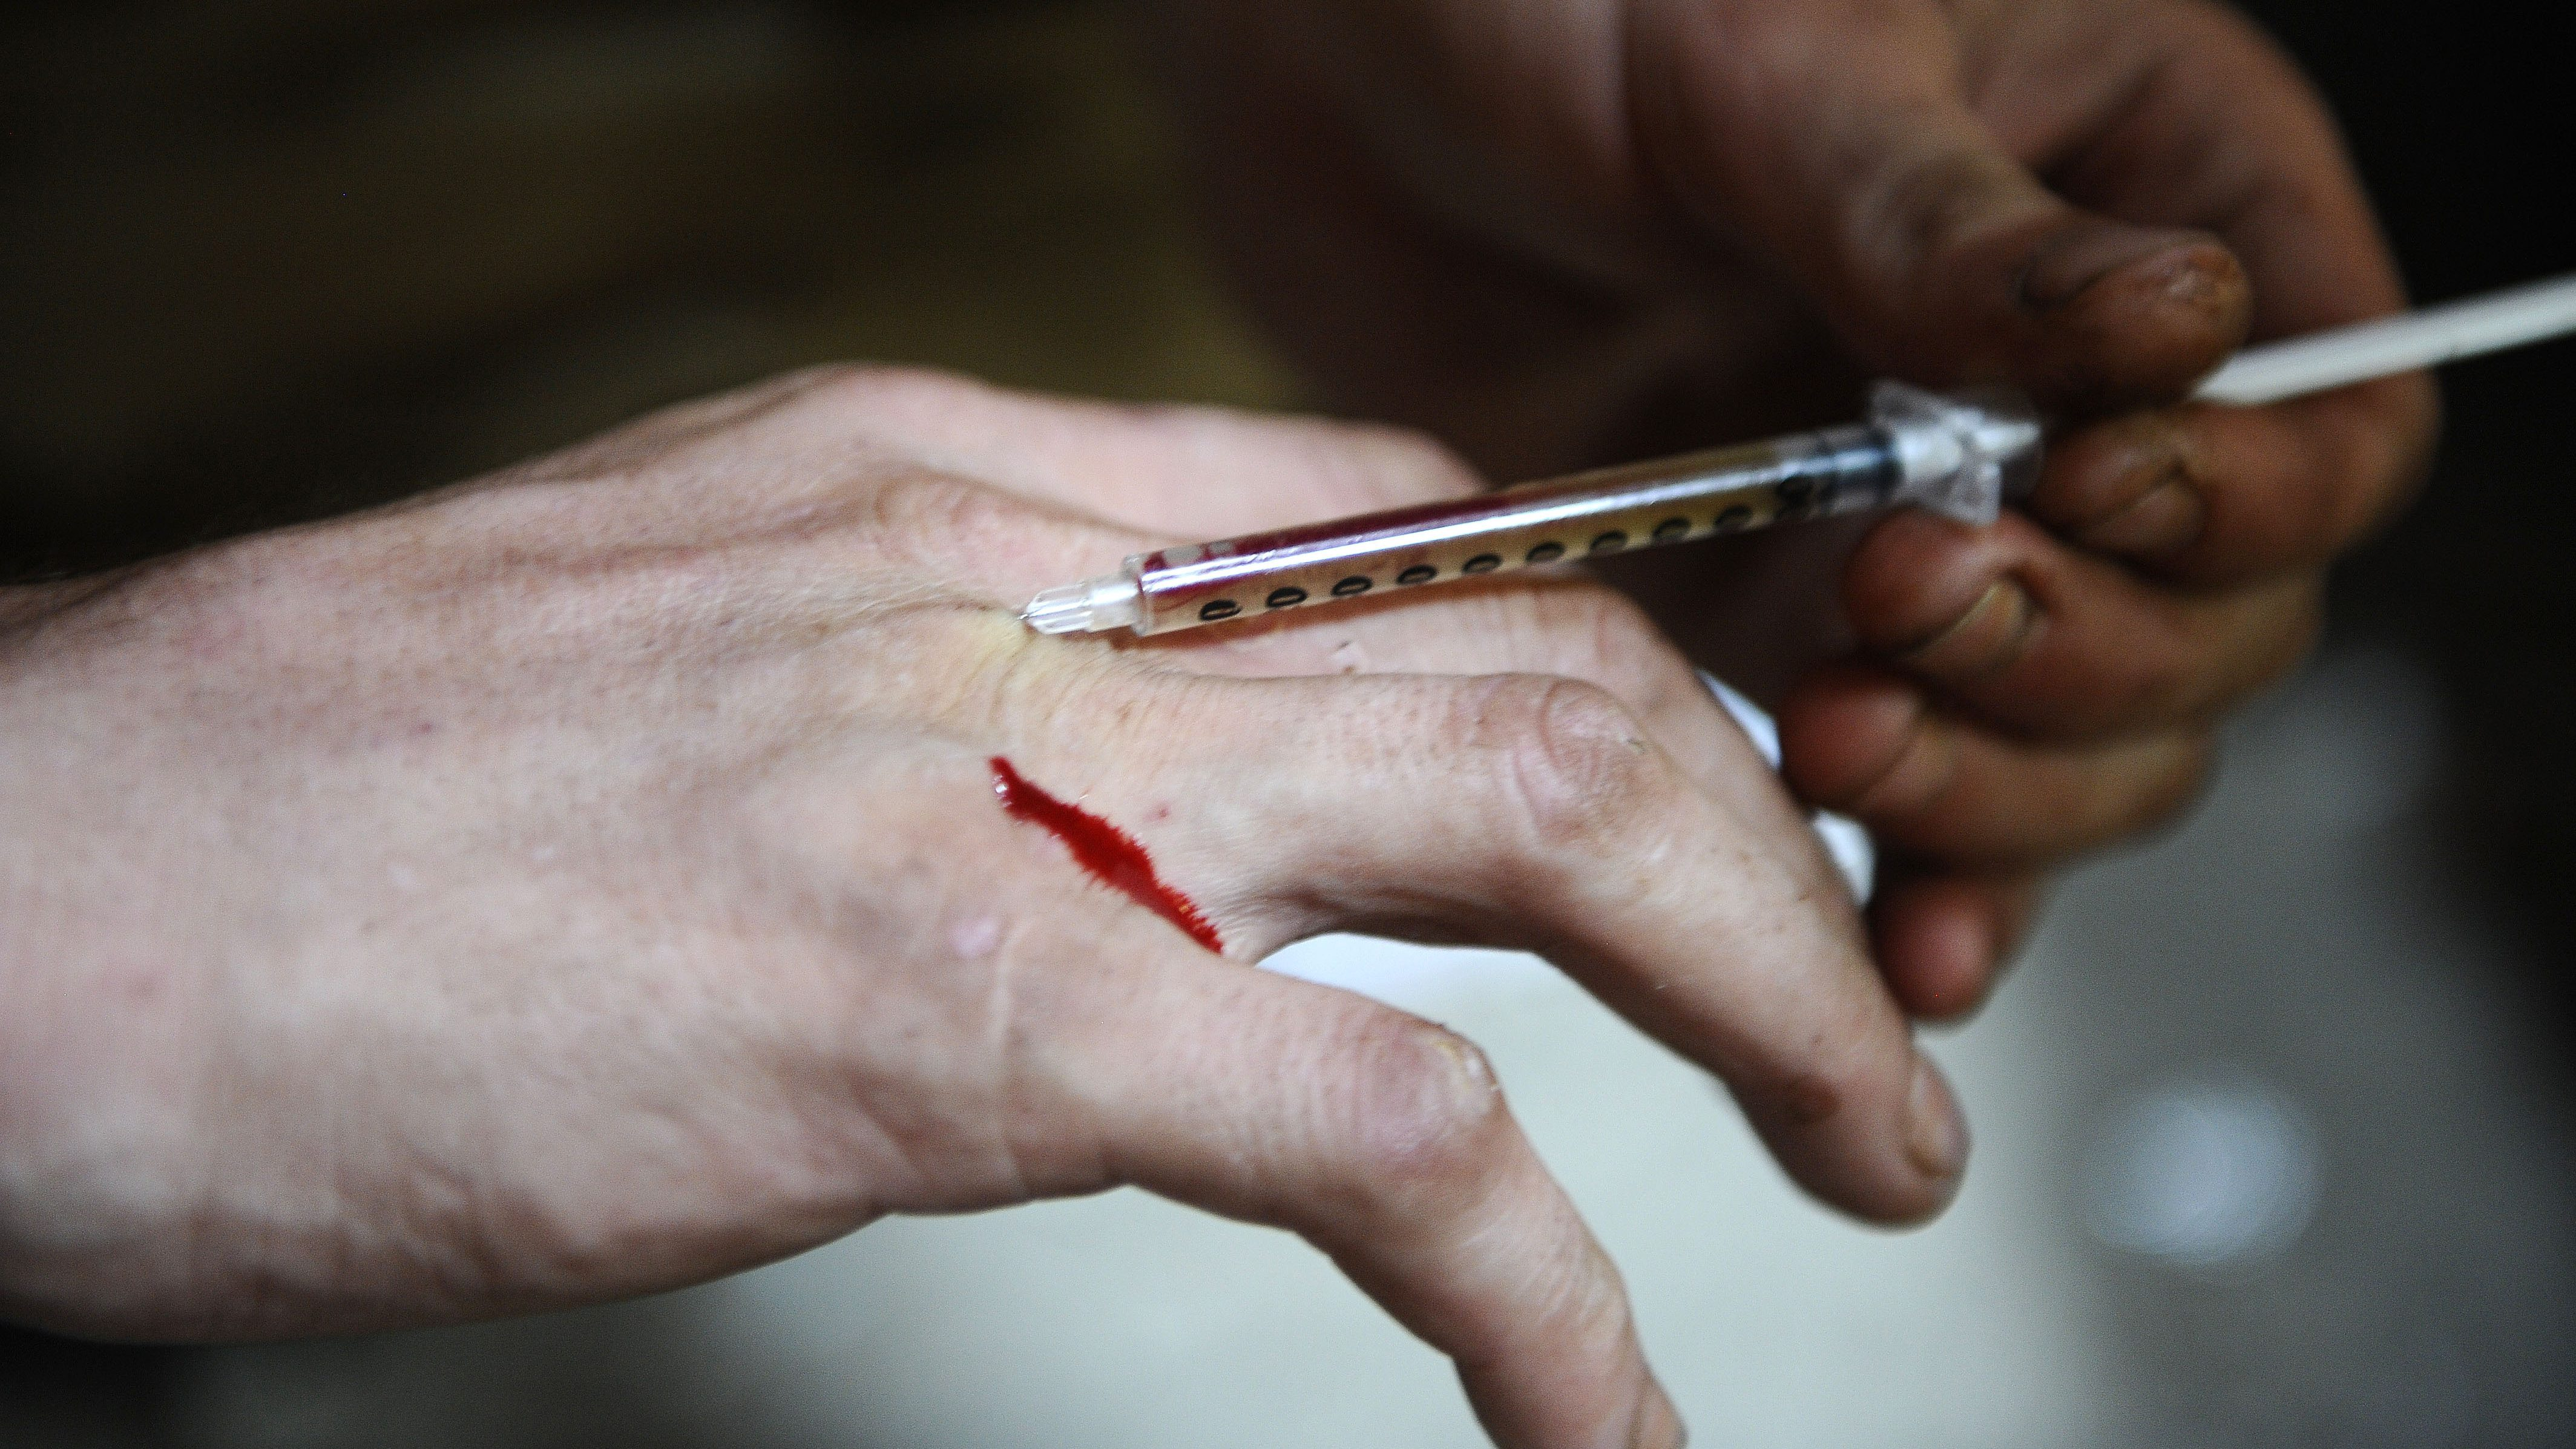 A man injects heroin into a vein in his hand at an abandoned house in Ljubljana